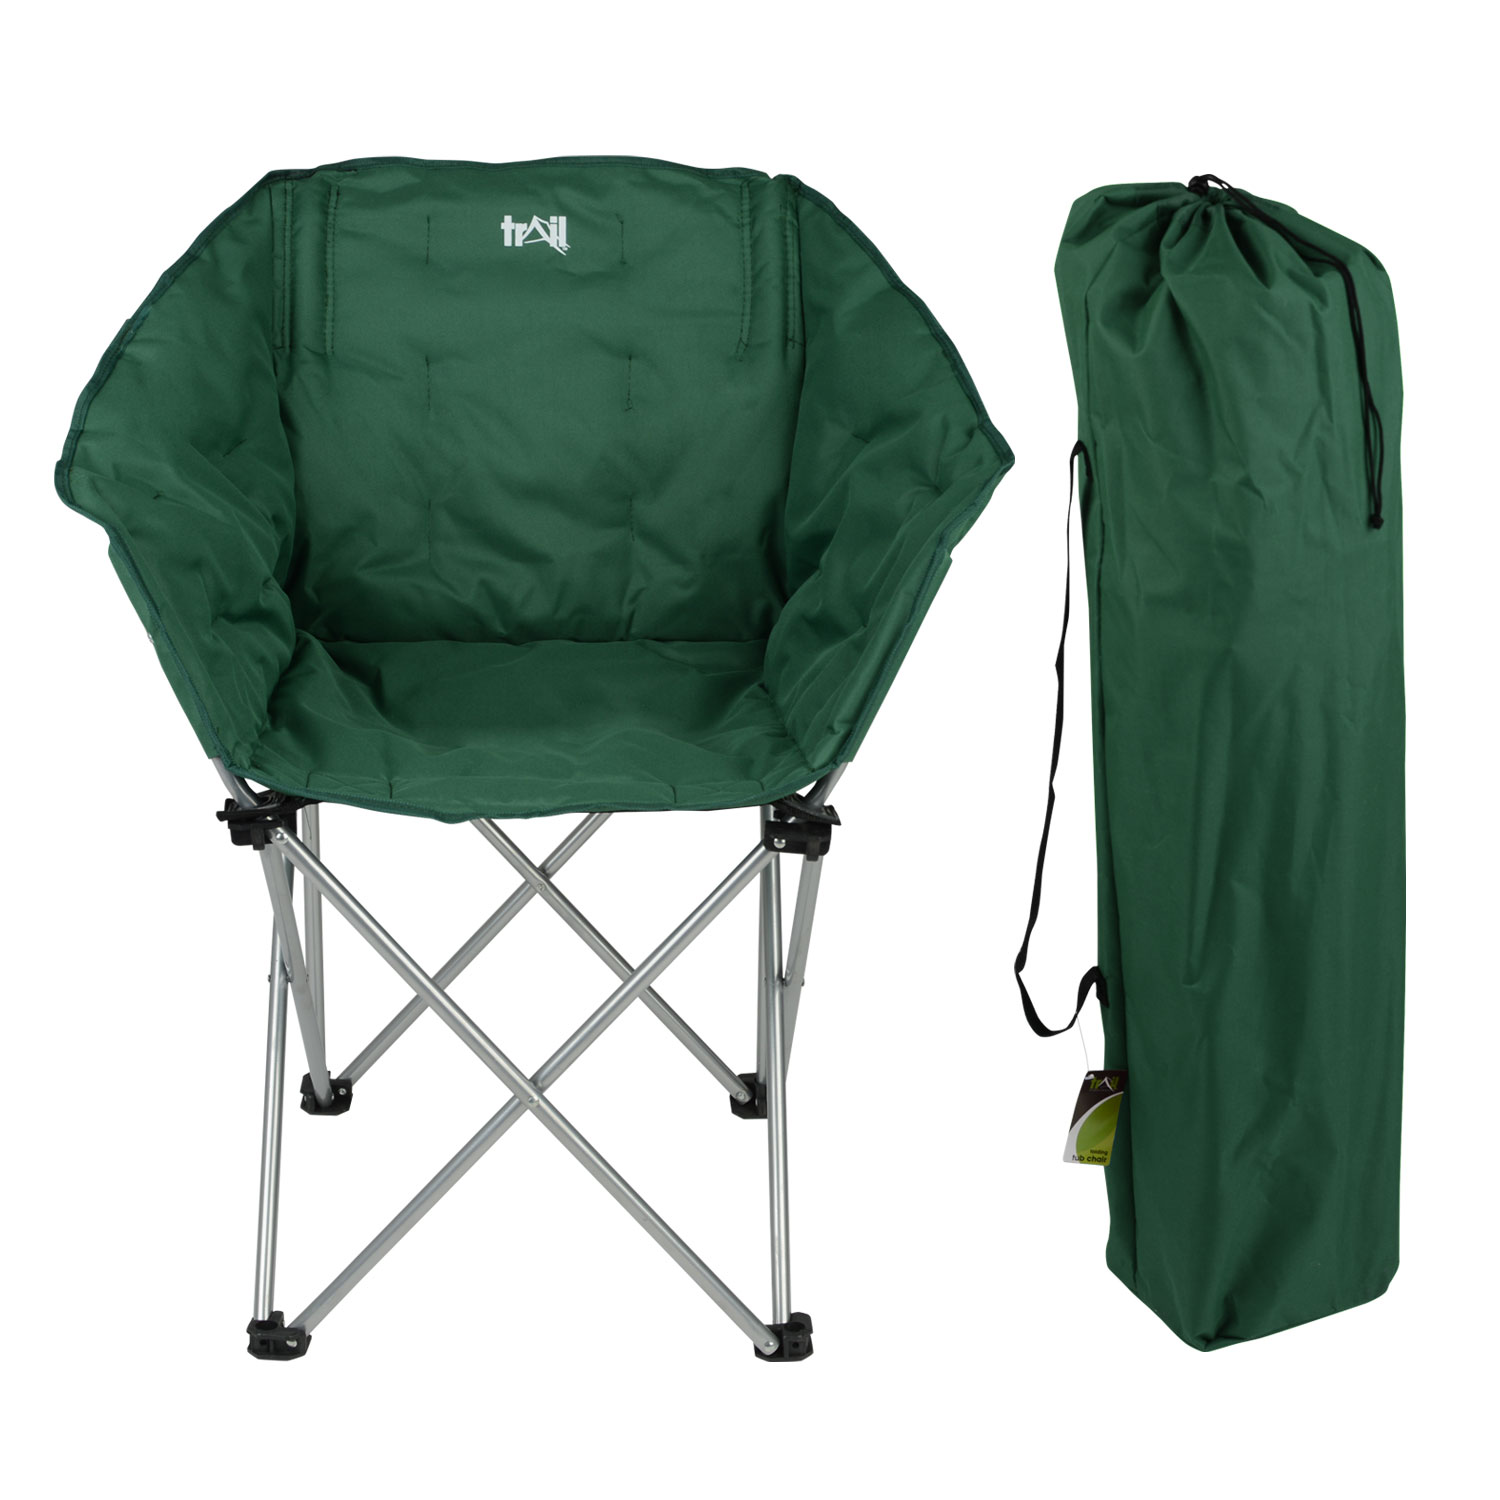 padded folding chairs uk dining chair seat covers john lewis trail tub thick heavy duty camping